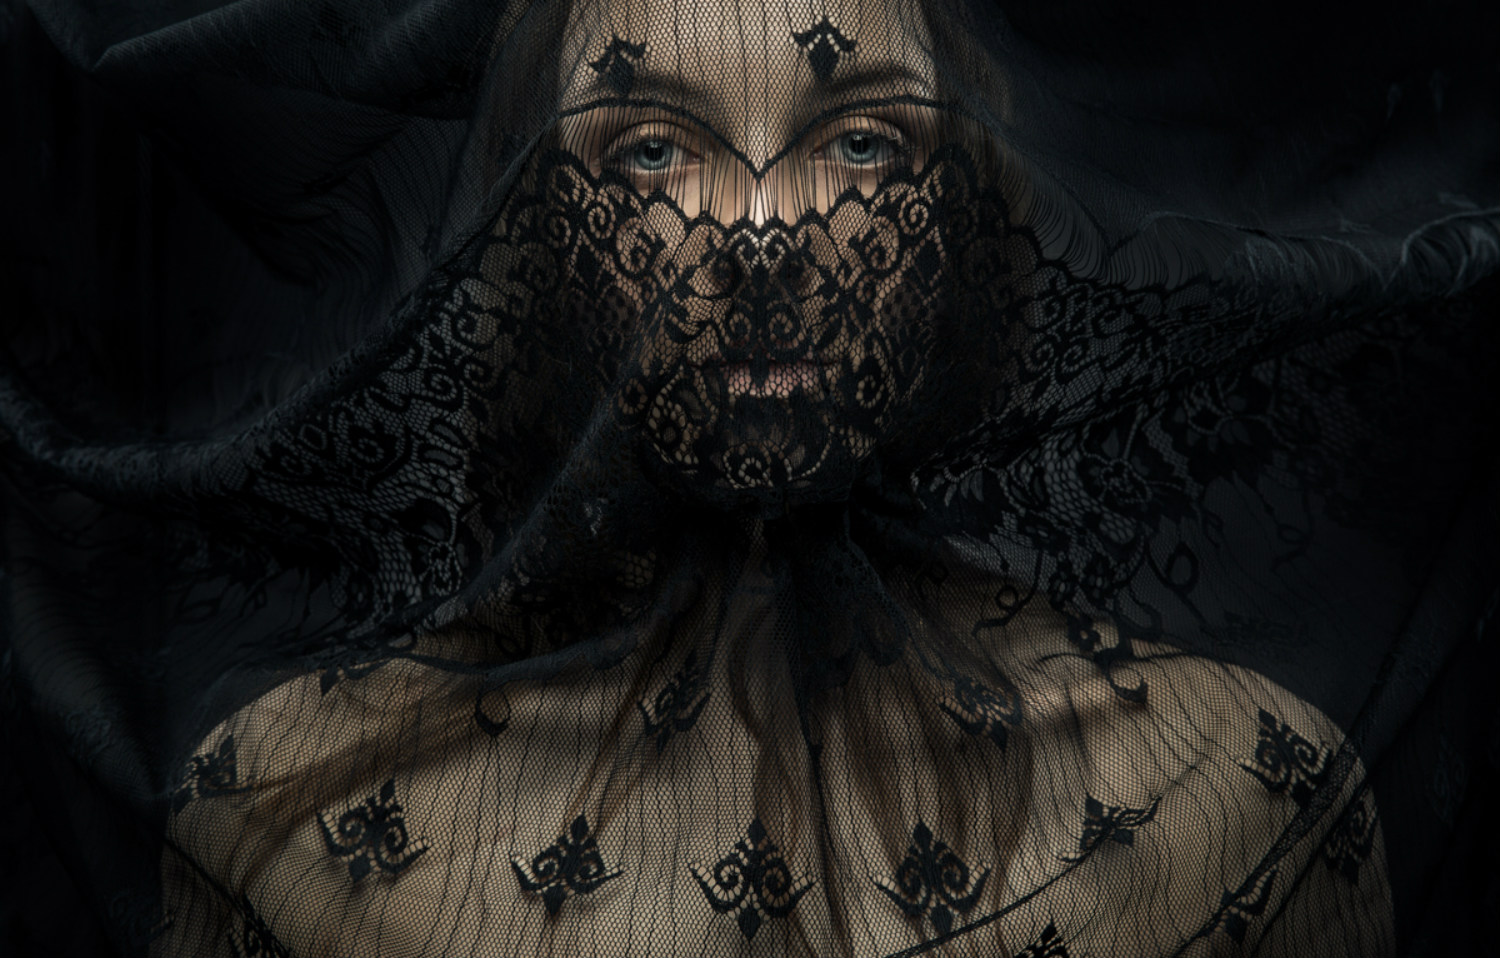 evgeni kolesnik photography surreal portraits ukraine black lace